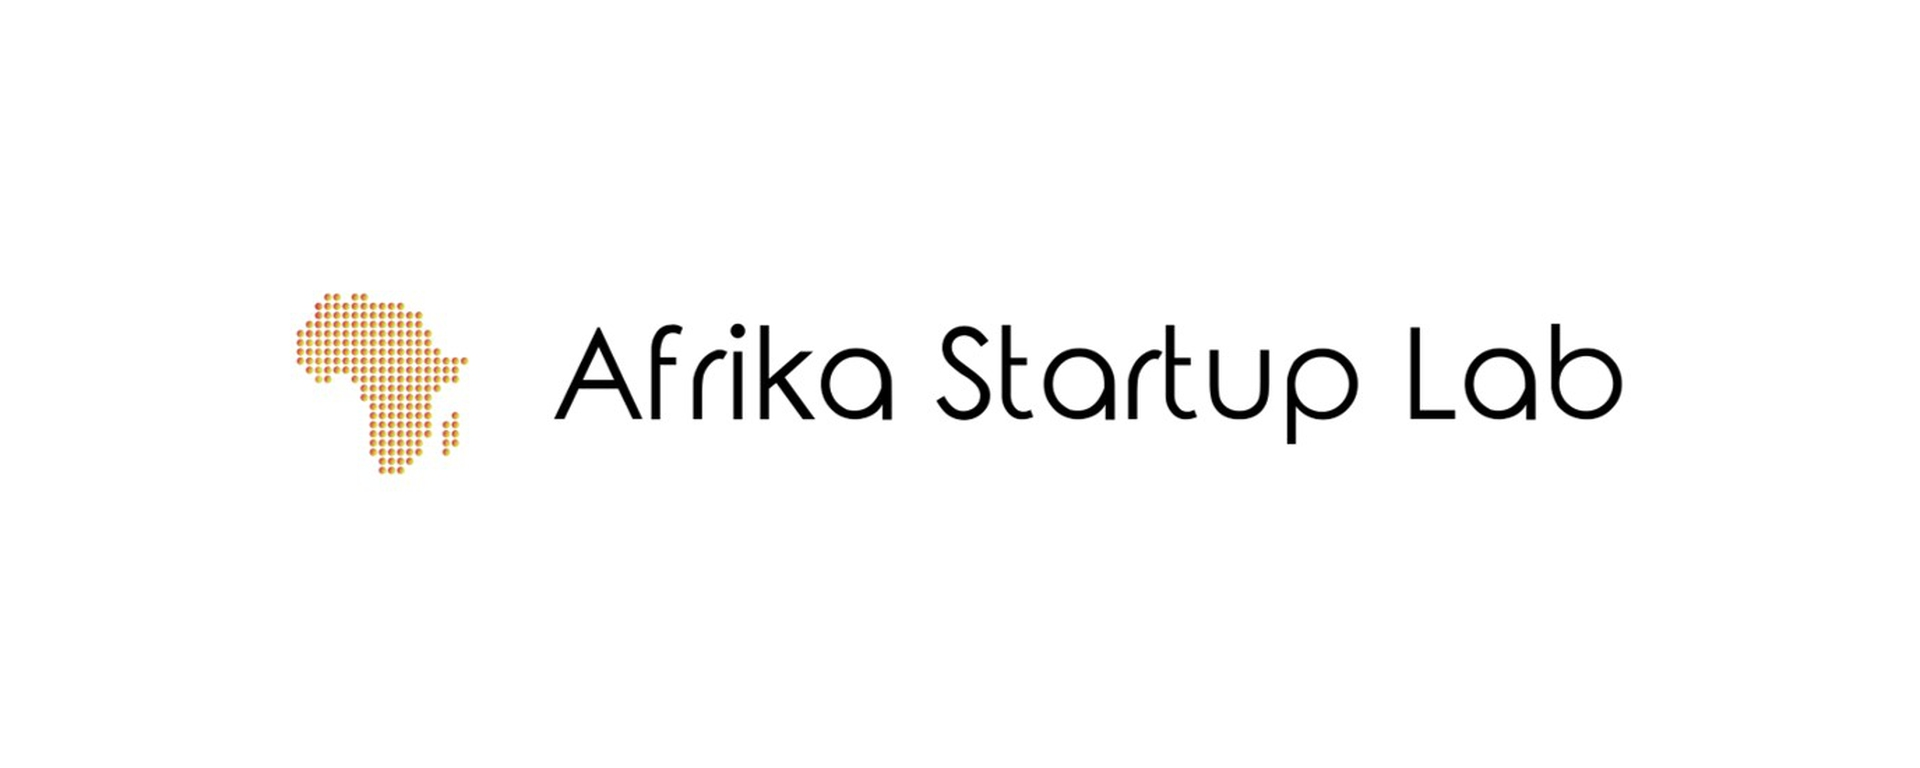 Afrika Startup Lab - Head of Partnerships Movemeback African opportunity cover image